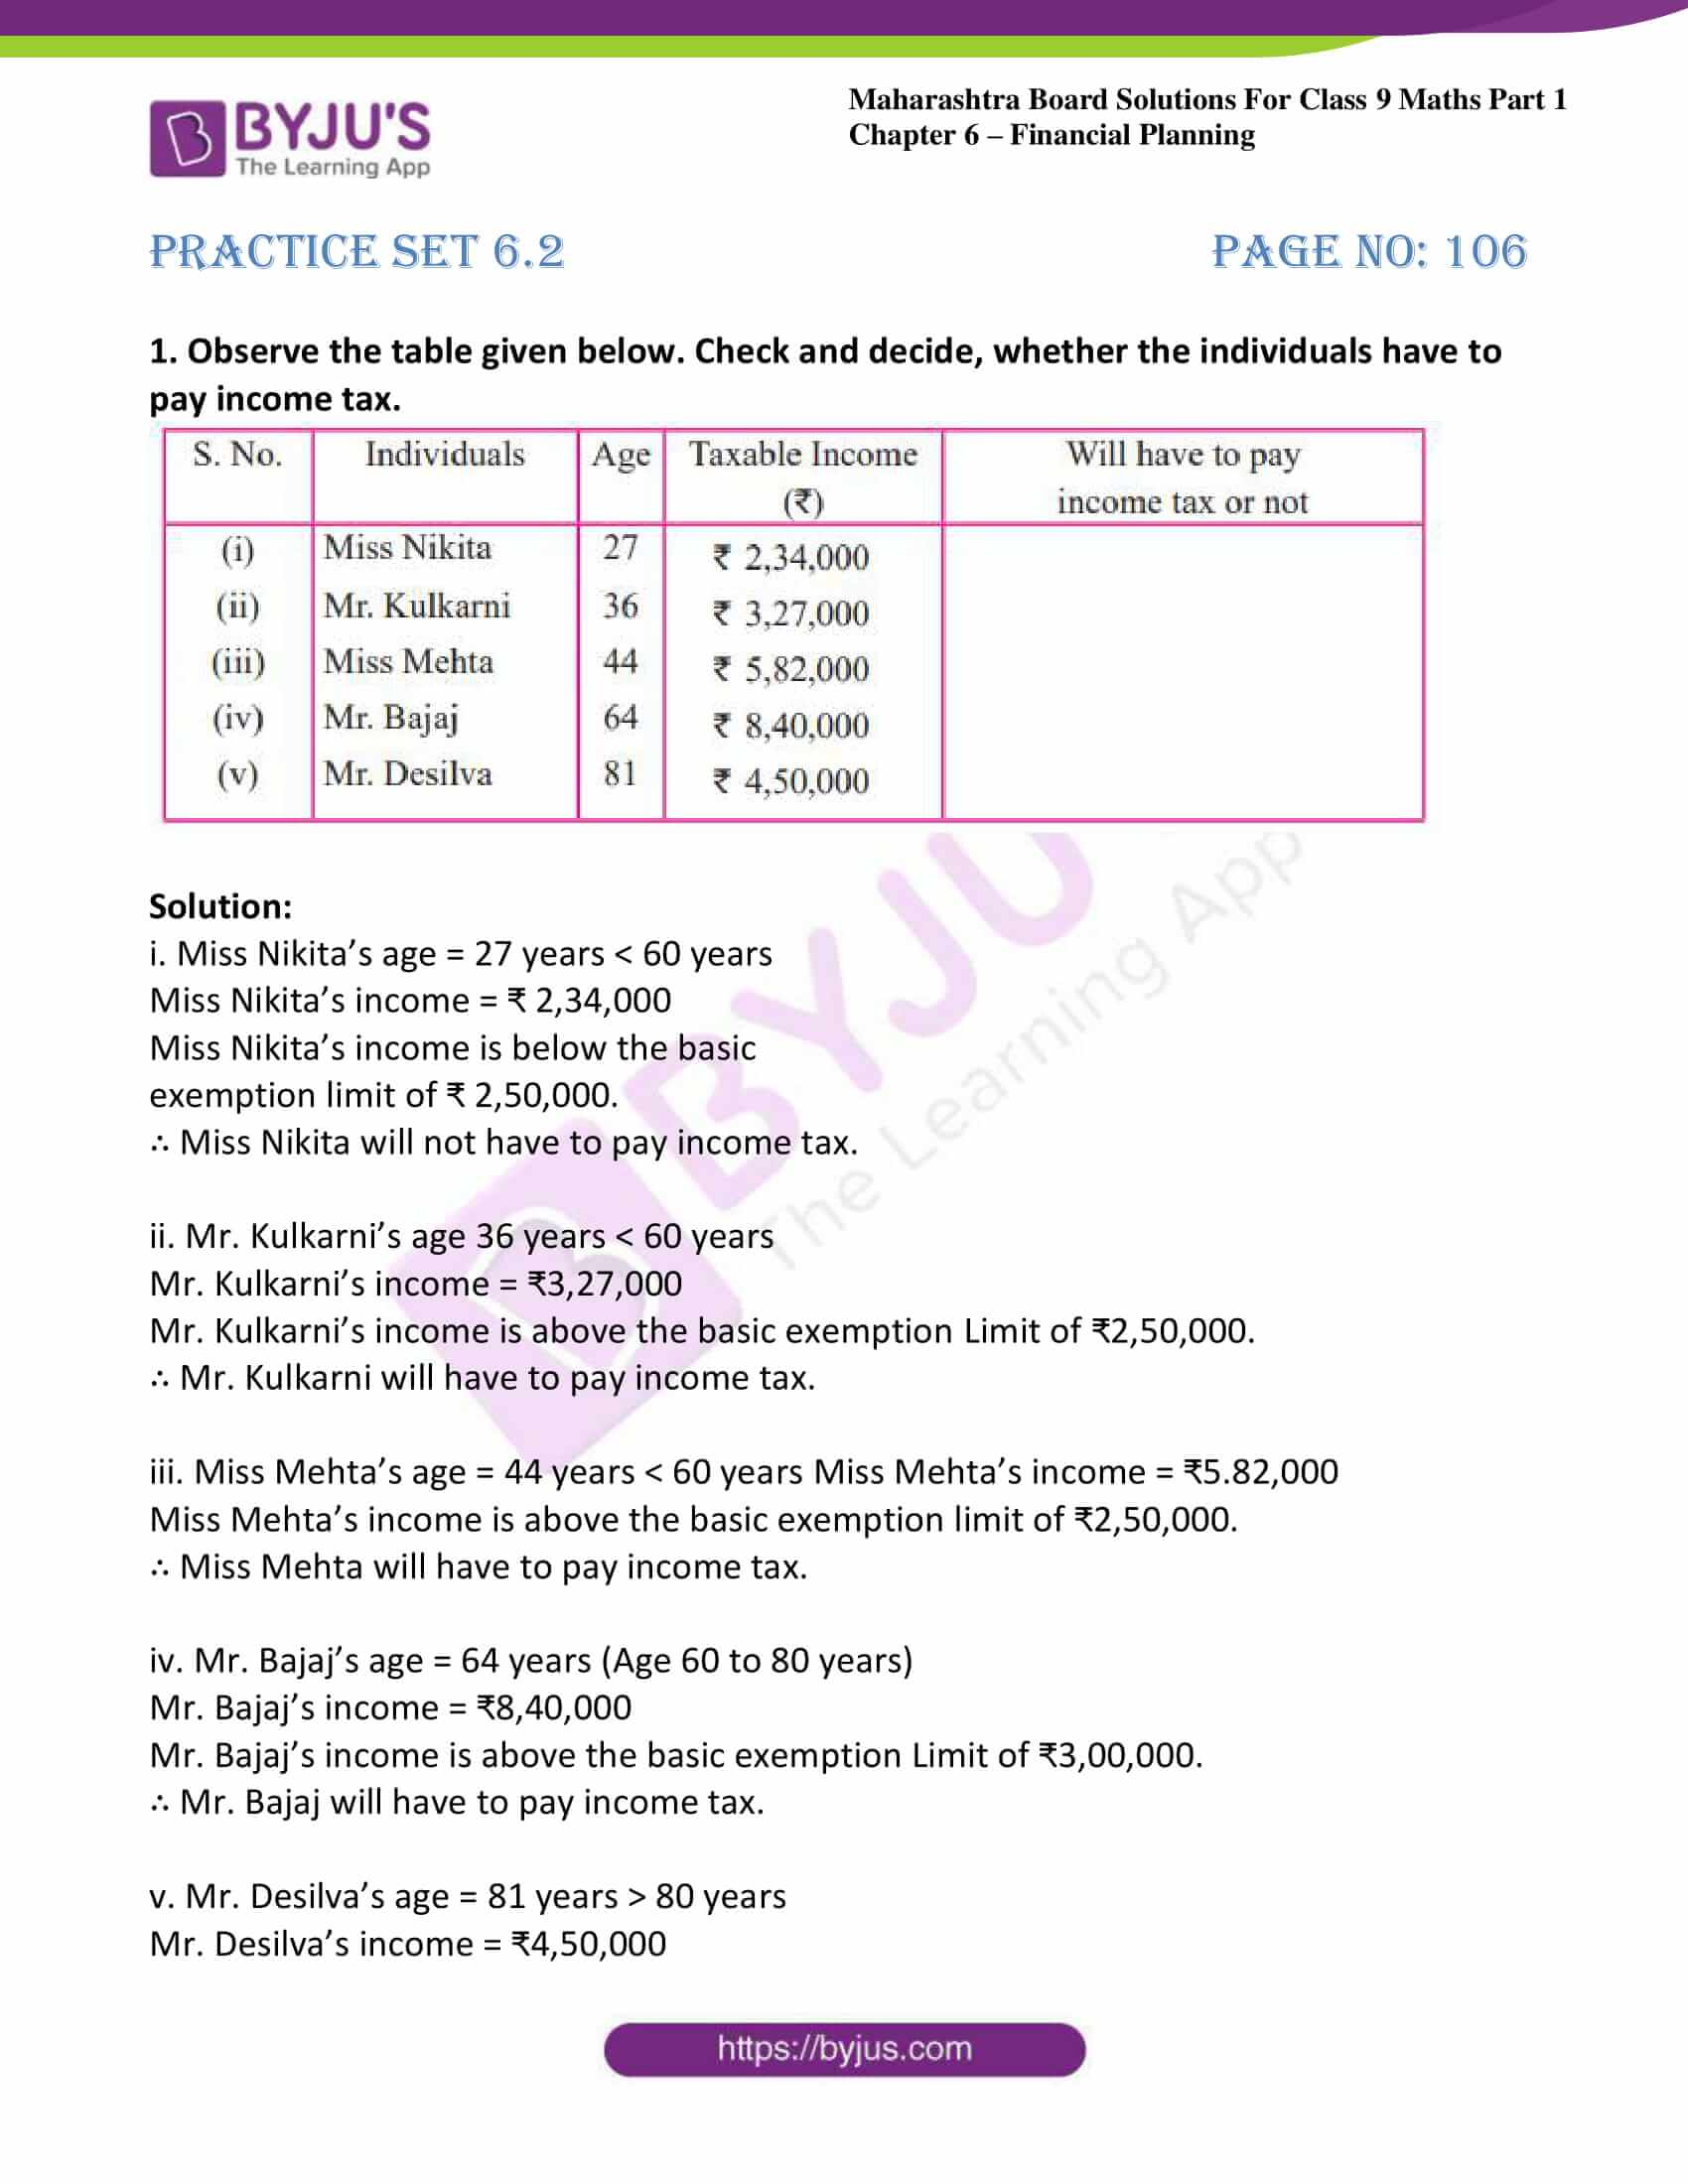 msbshse sol class 9 maths part 1 chapter 6 financial planing 05